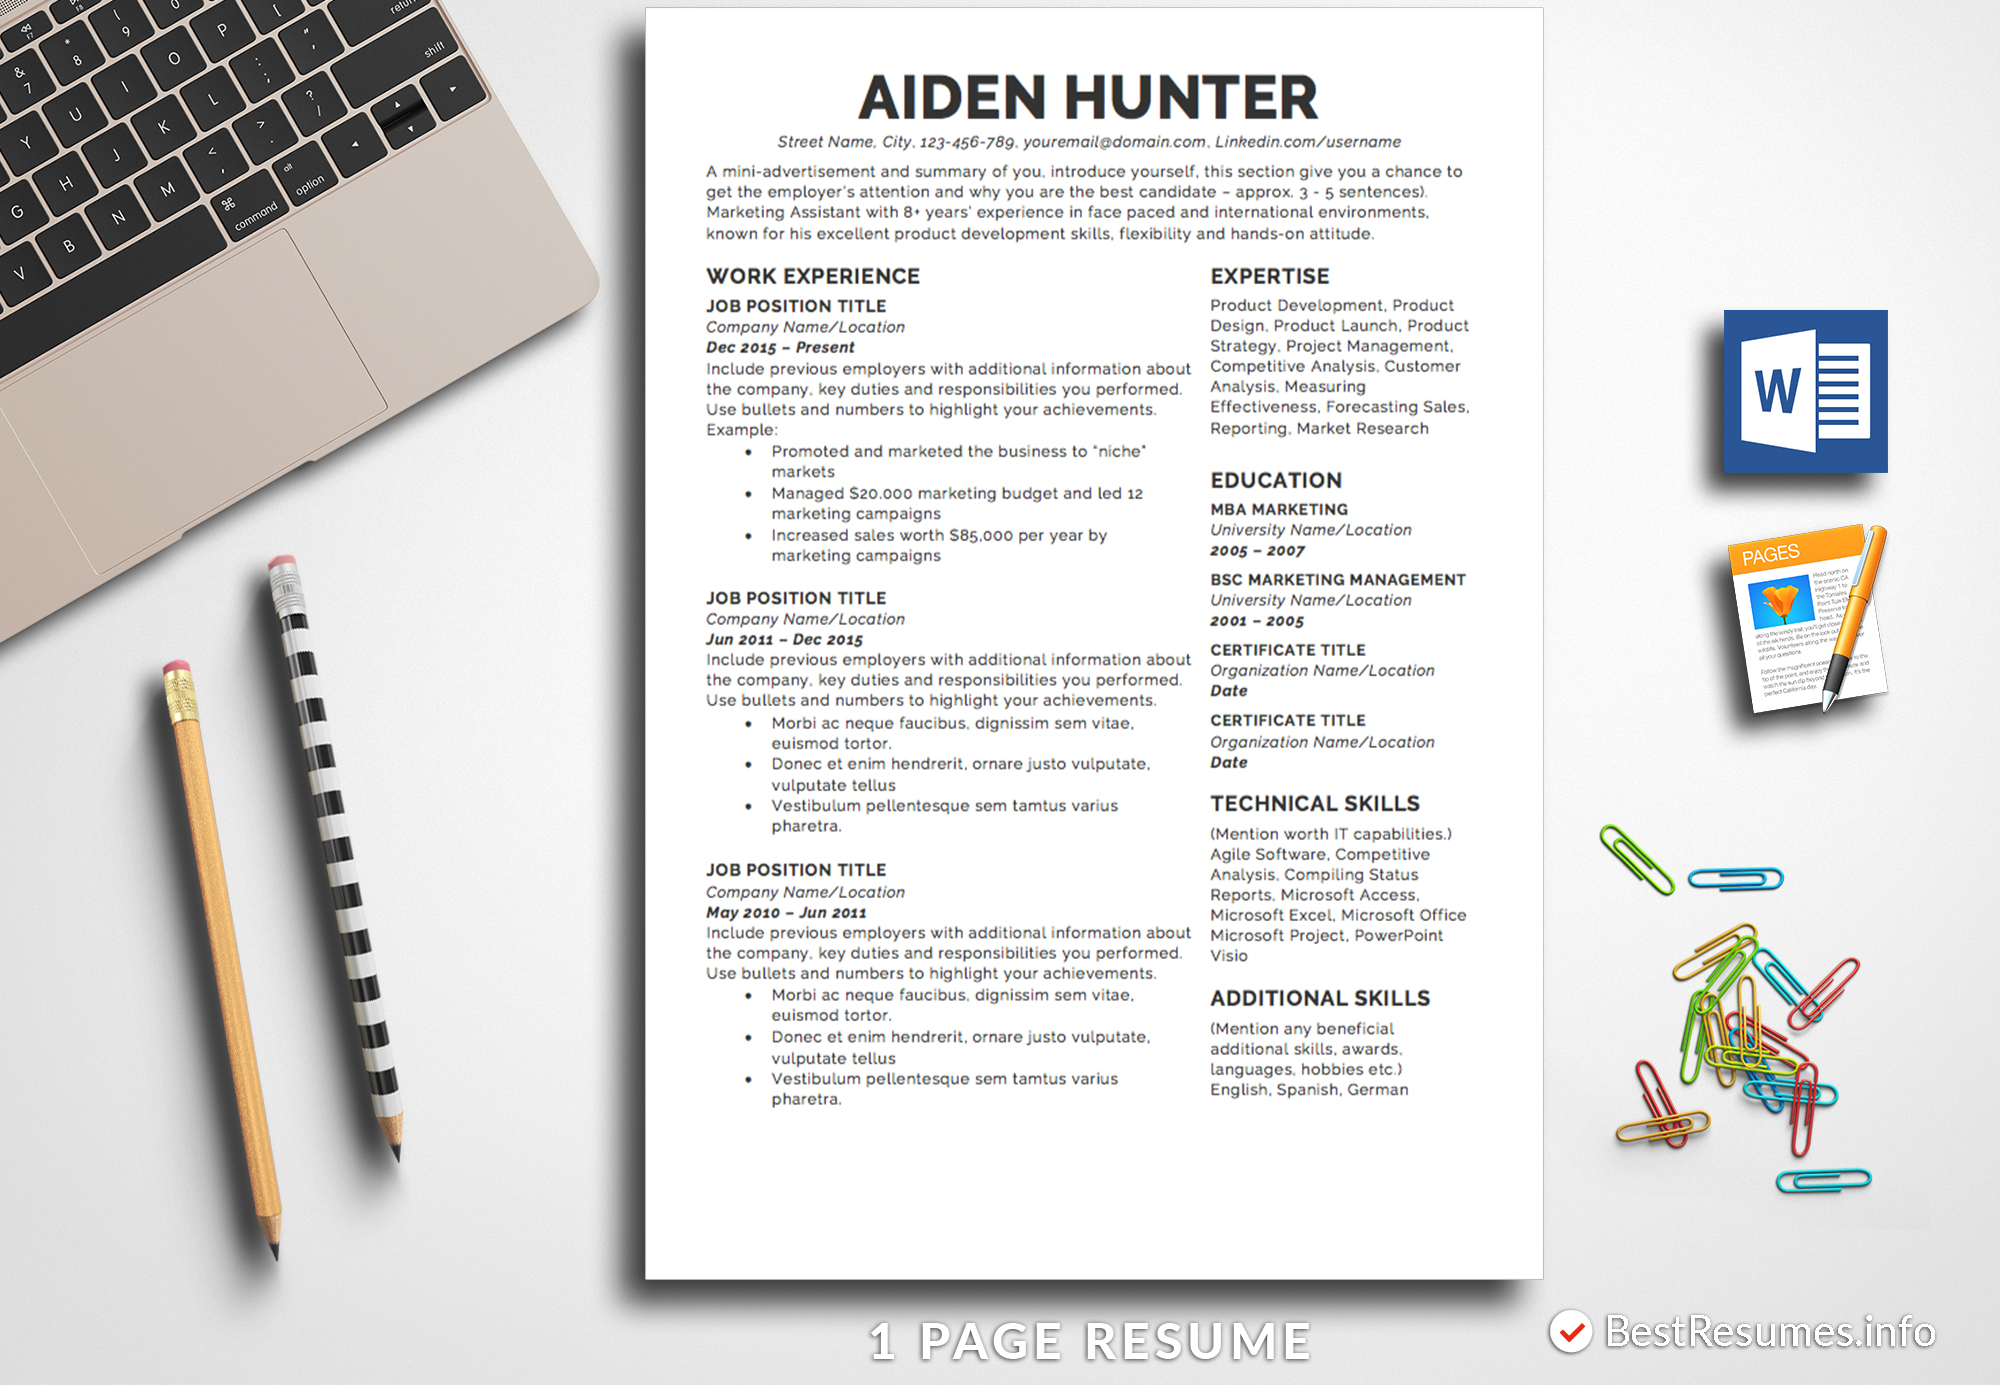 Resume Template for Pages Mac - Resume Template Aiden Hunter Bestresumes